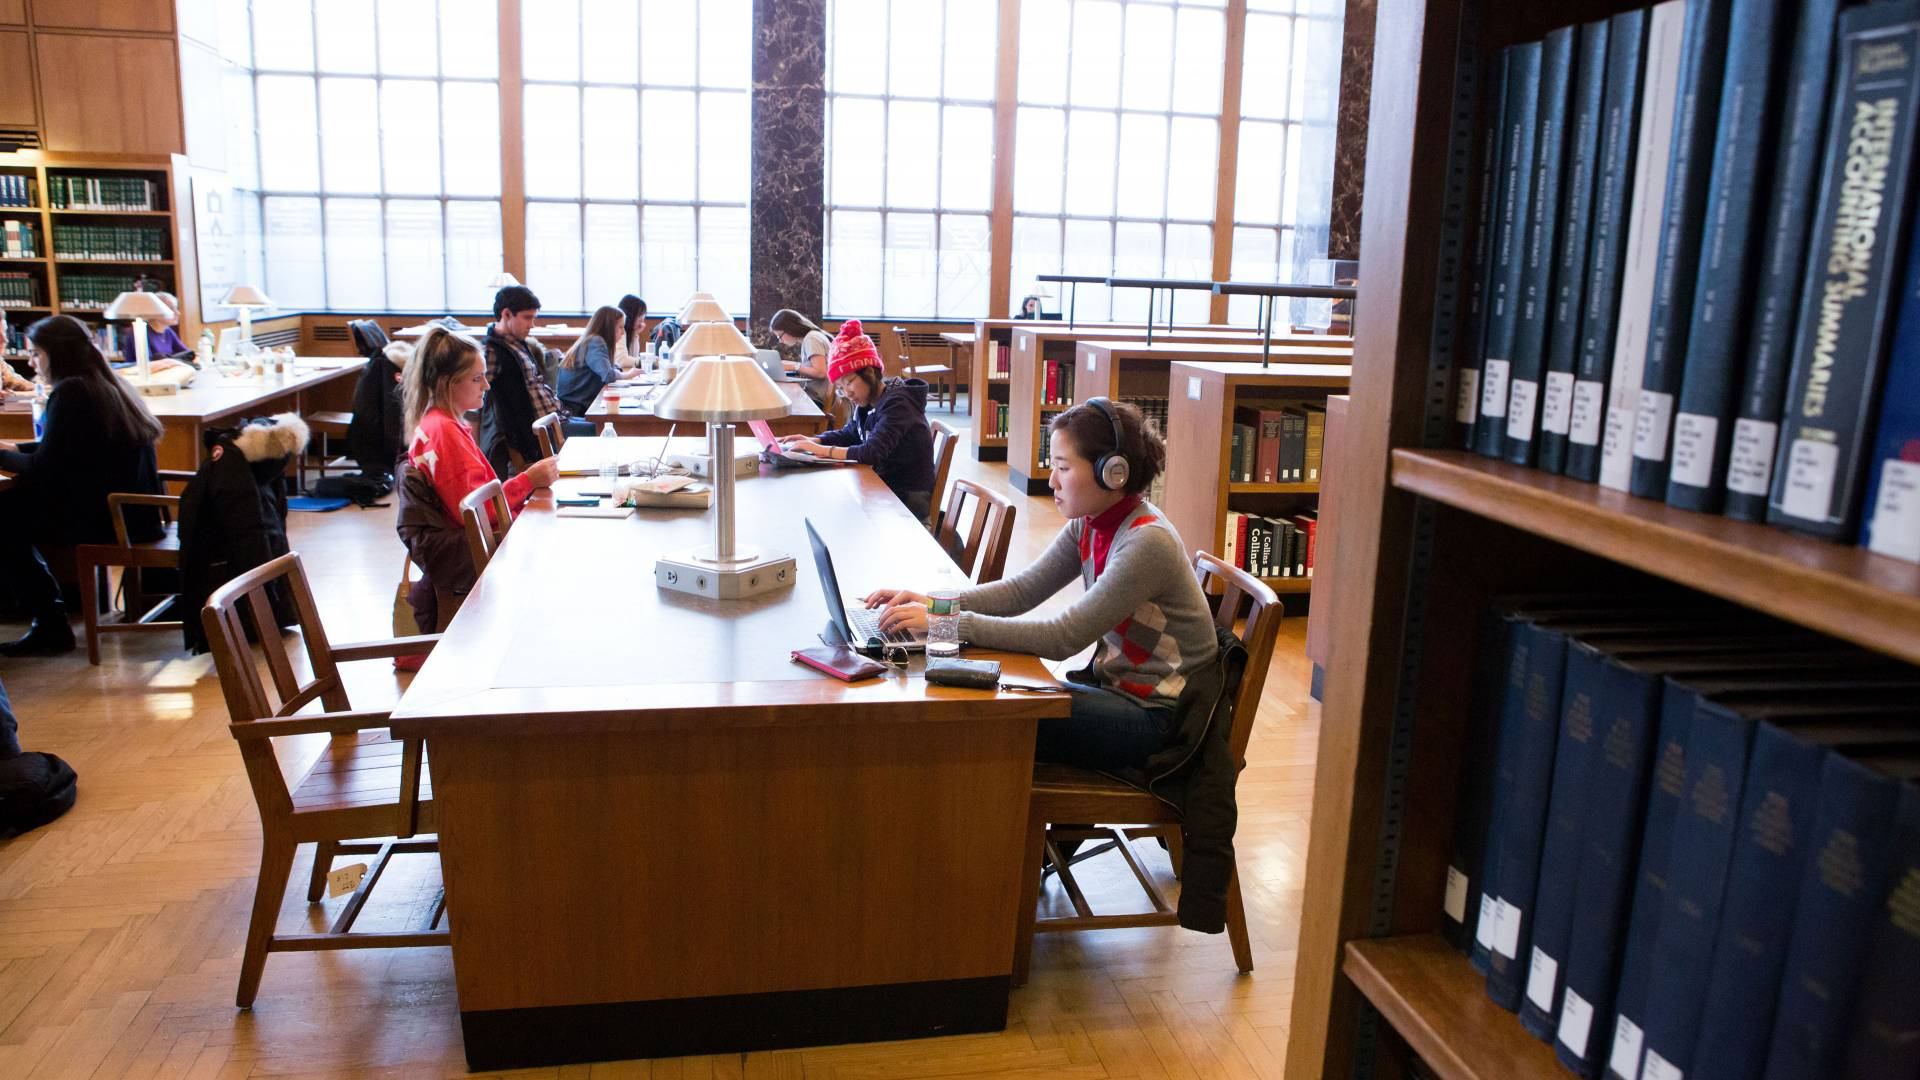 Students study at tables in firestone library in front of large windows